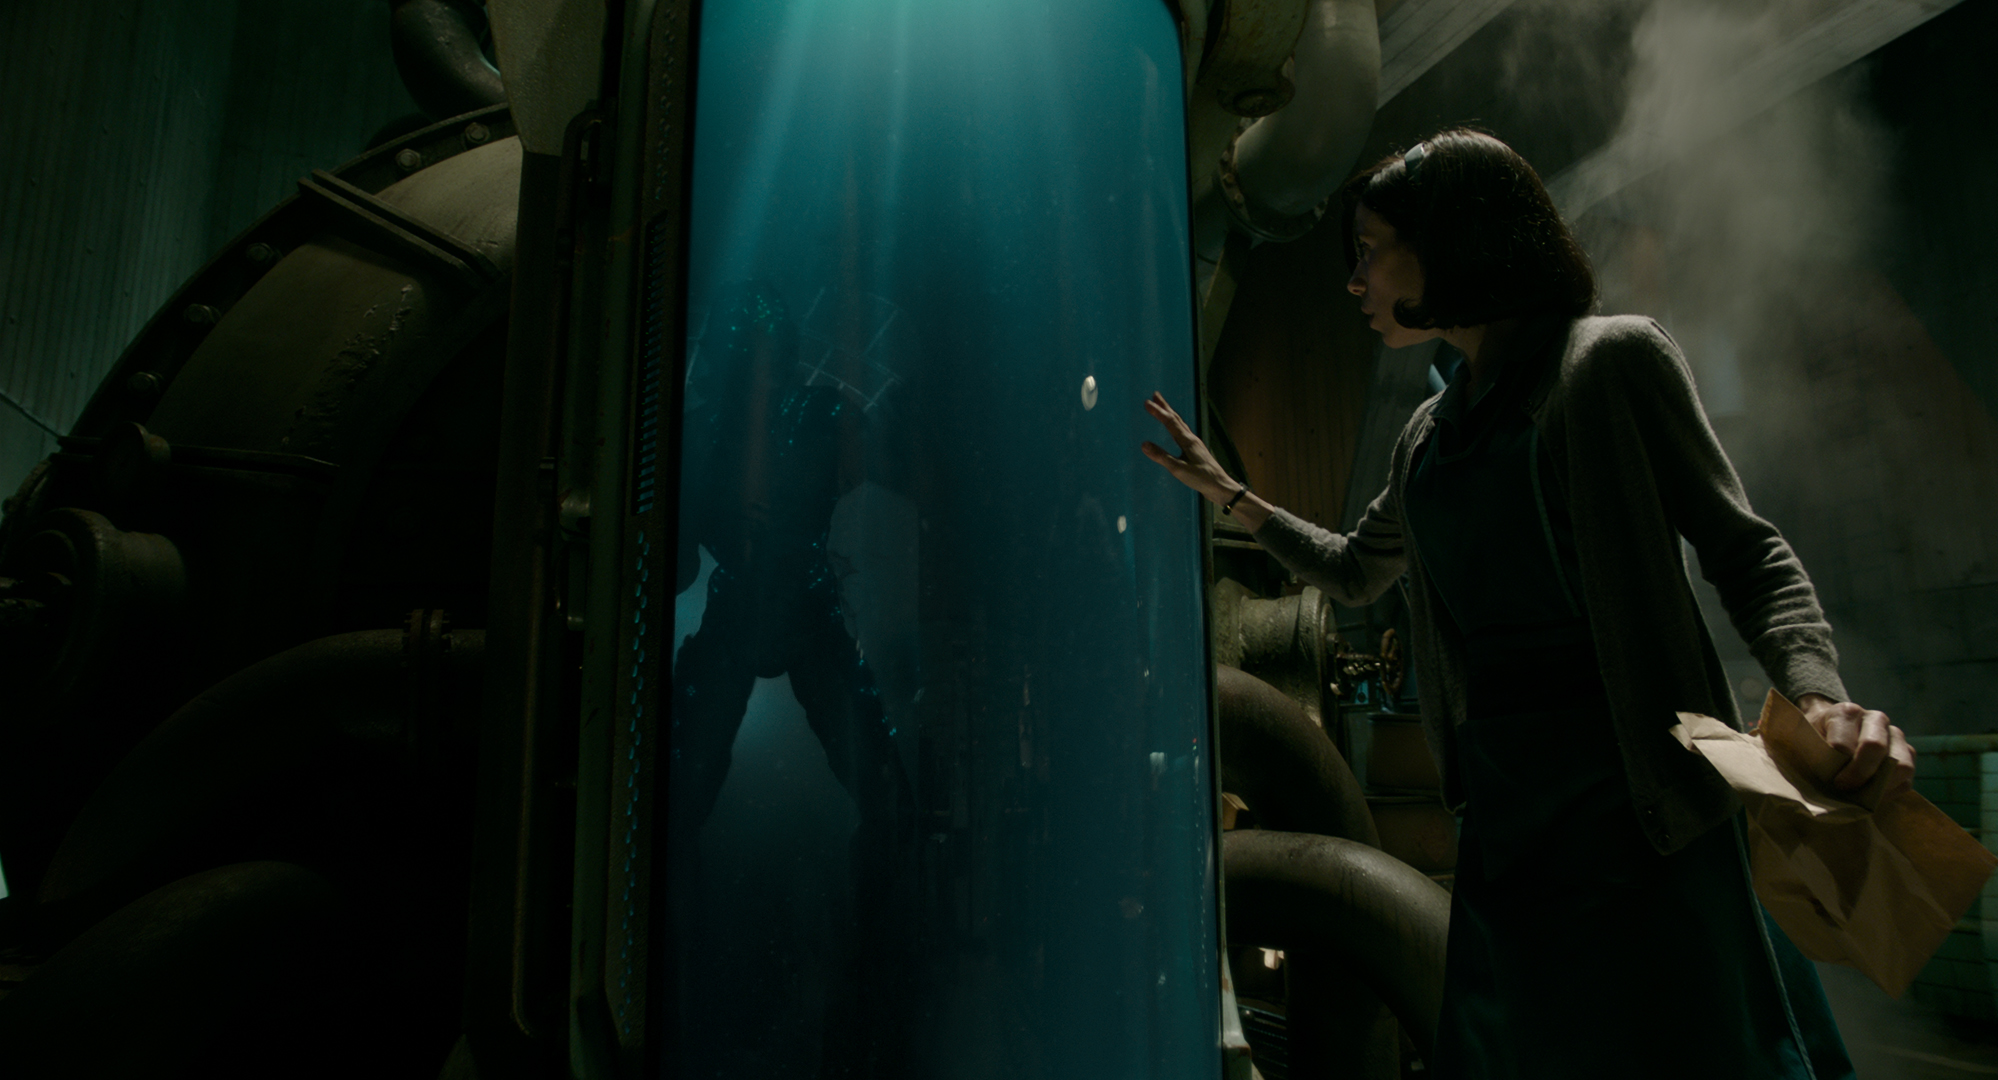 The Shape of Water - Doug Jones and Sally Hawkins Photo Courtesy of Fox Searchlight Pictures © 2017 Twentieth Century Fox Film Corporation All Rights Reserved